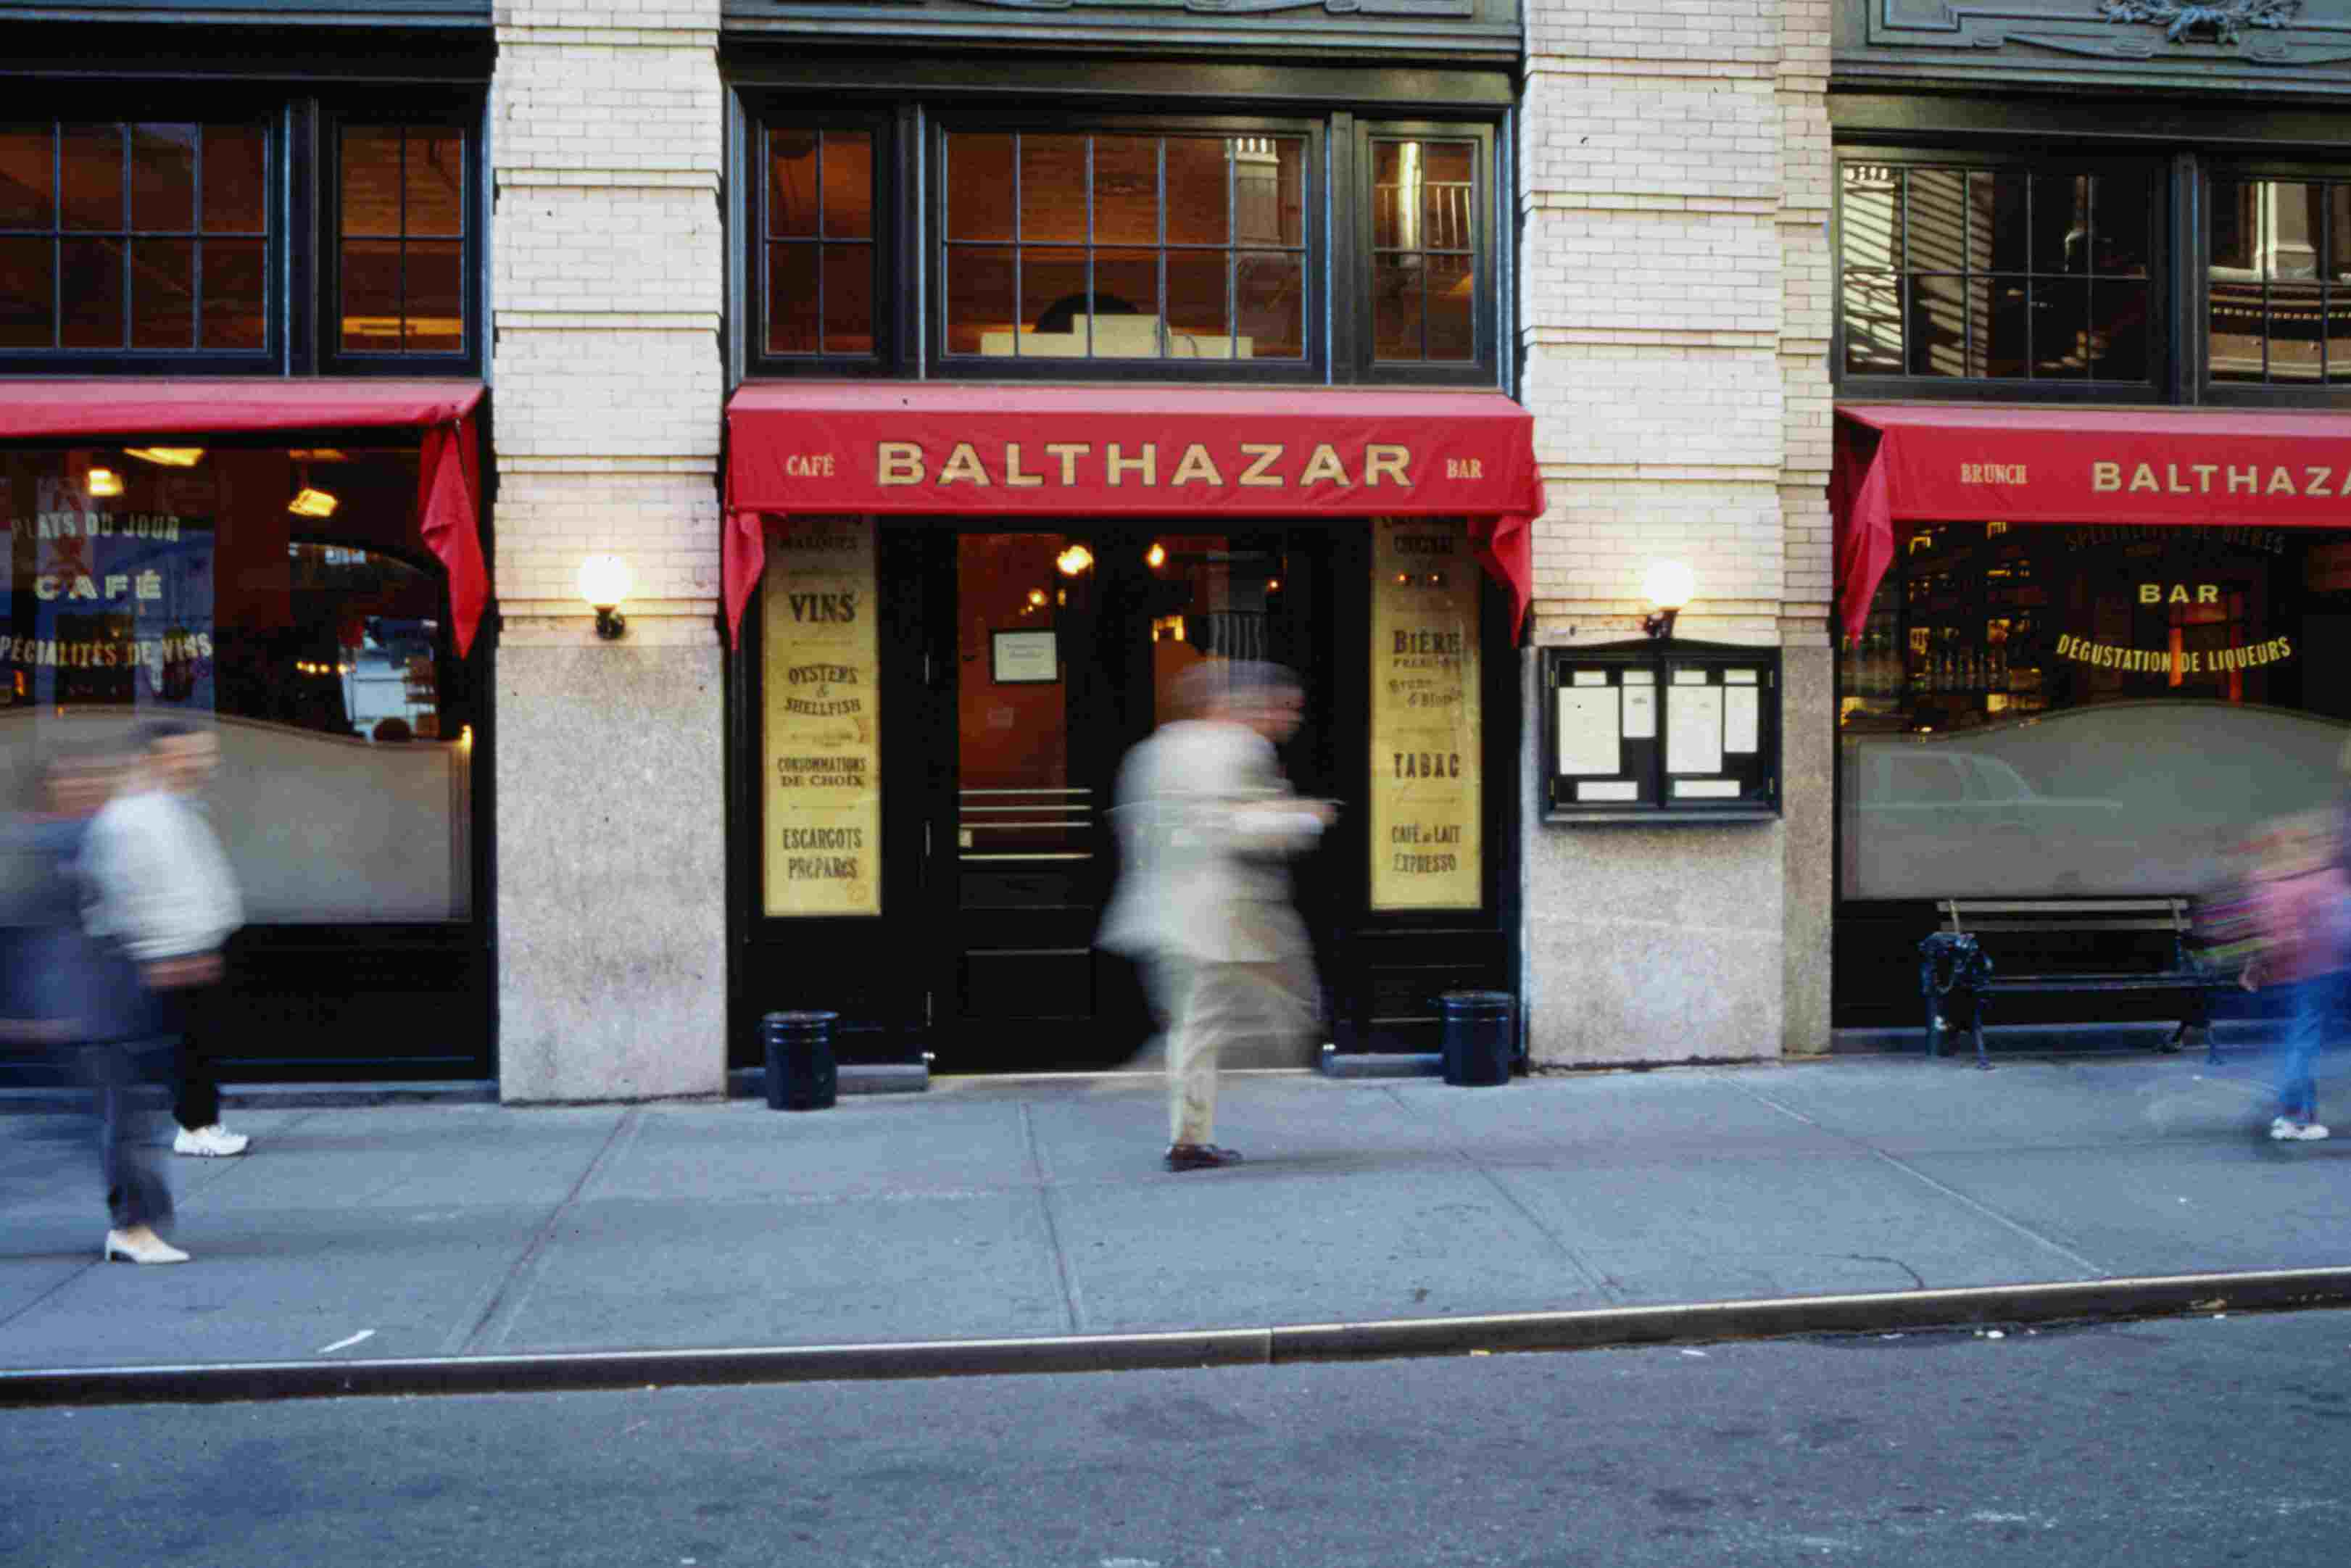 Restaurante Balthazar en Little Italy, Nueva York